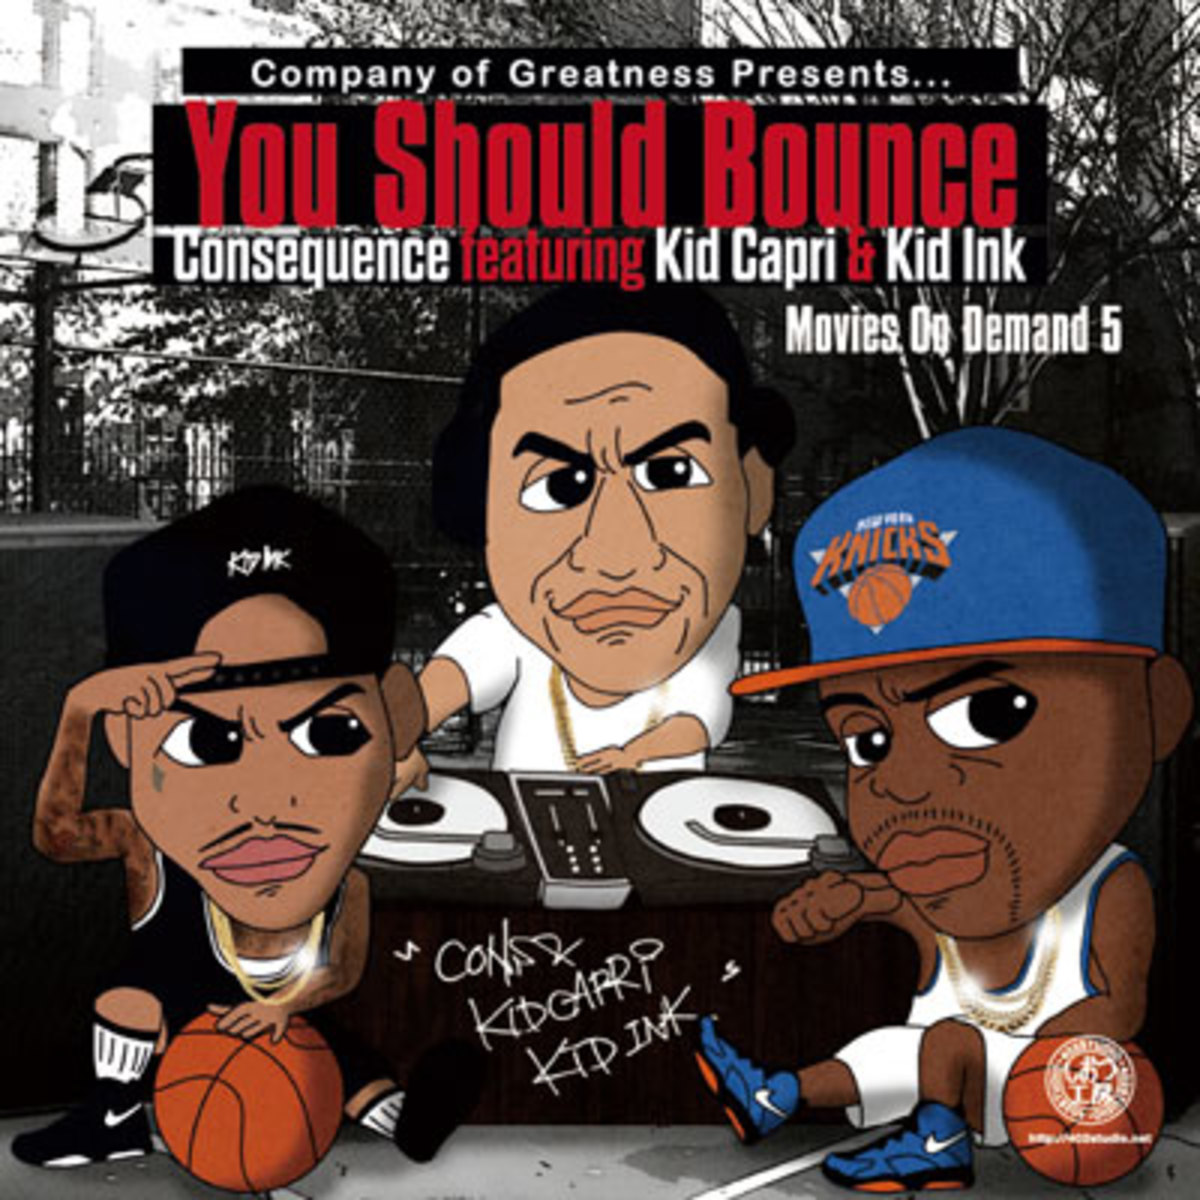 consequence-youshouldbounce.jpg